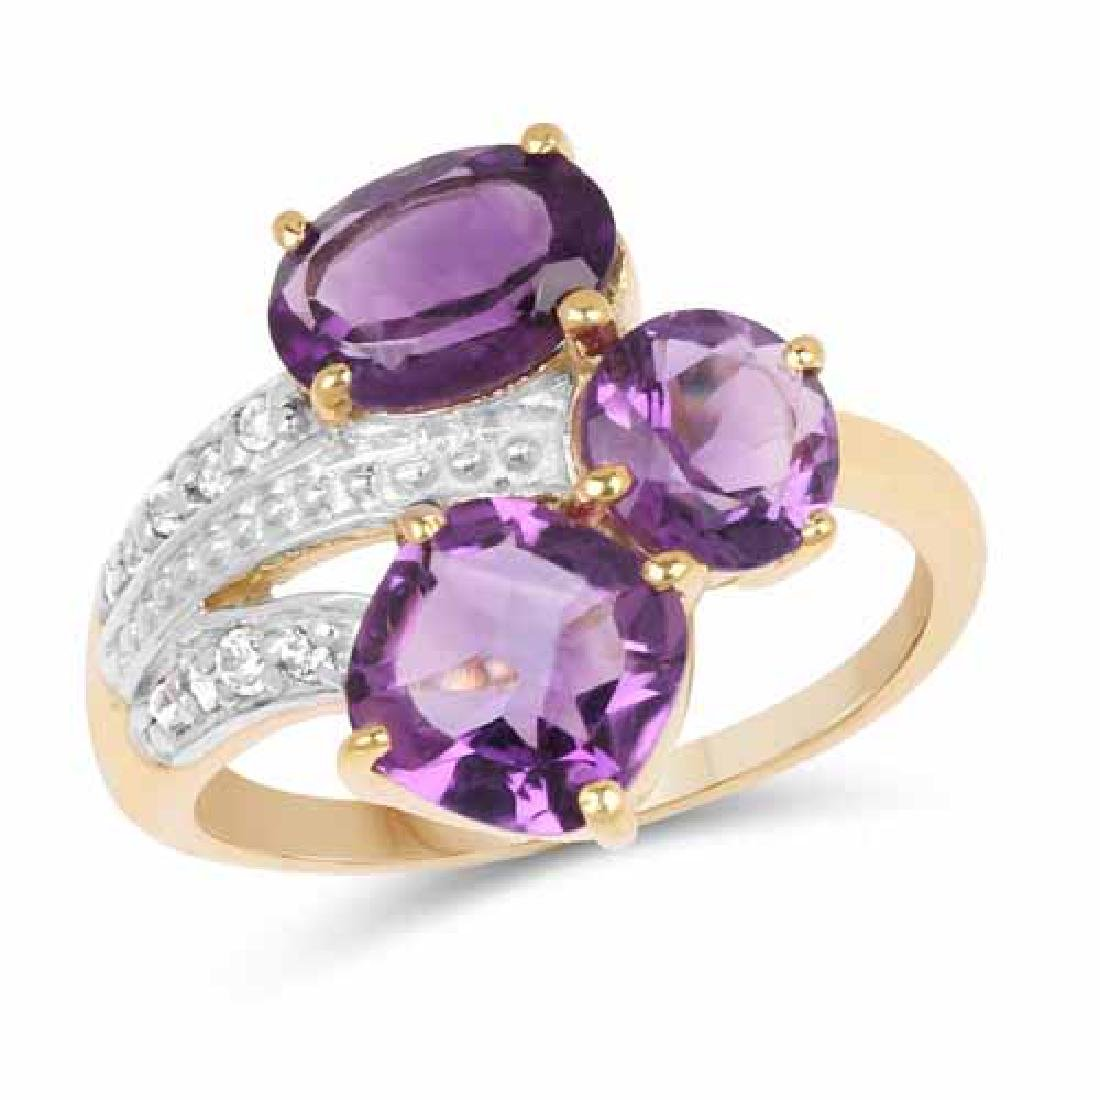 14K Yellow Gold Plated 3.15 Carat Genuine Amethyst and